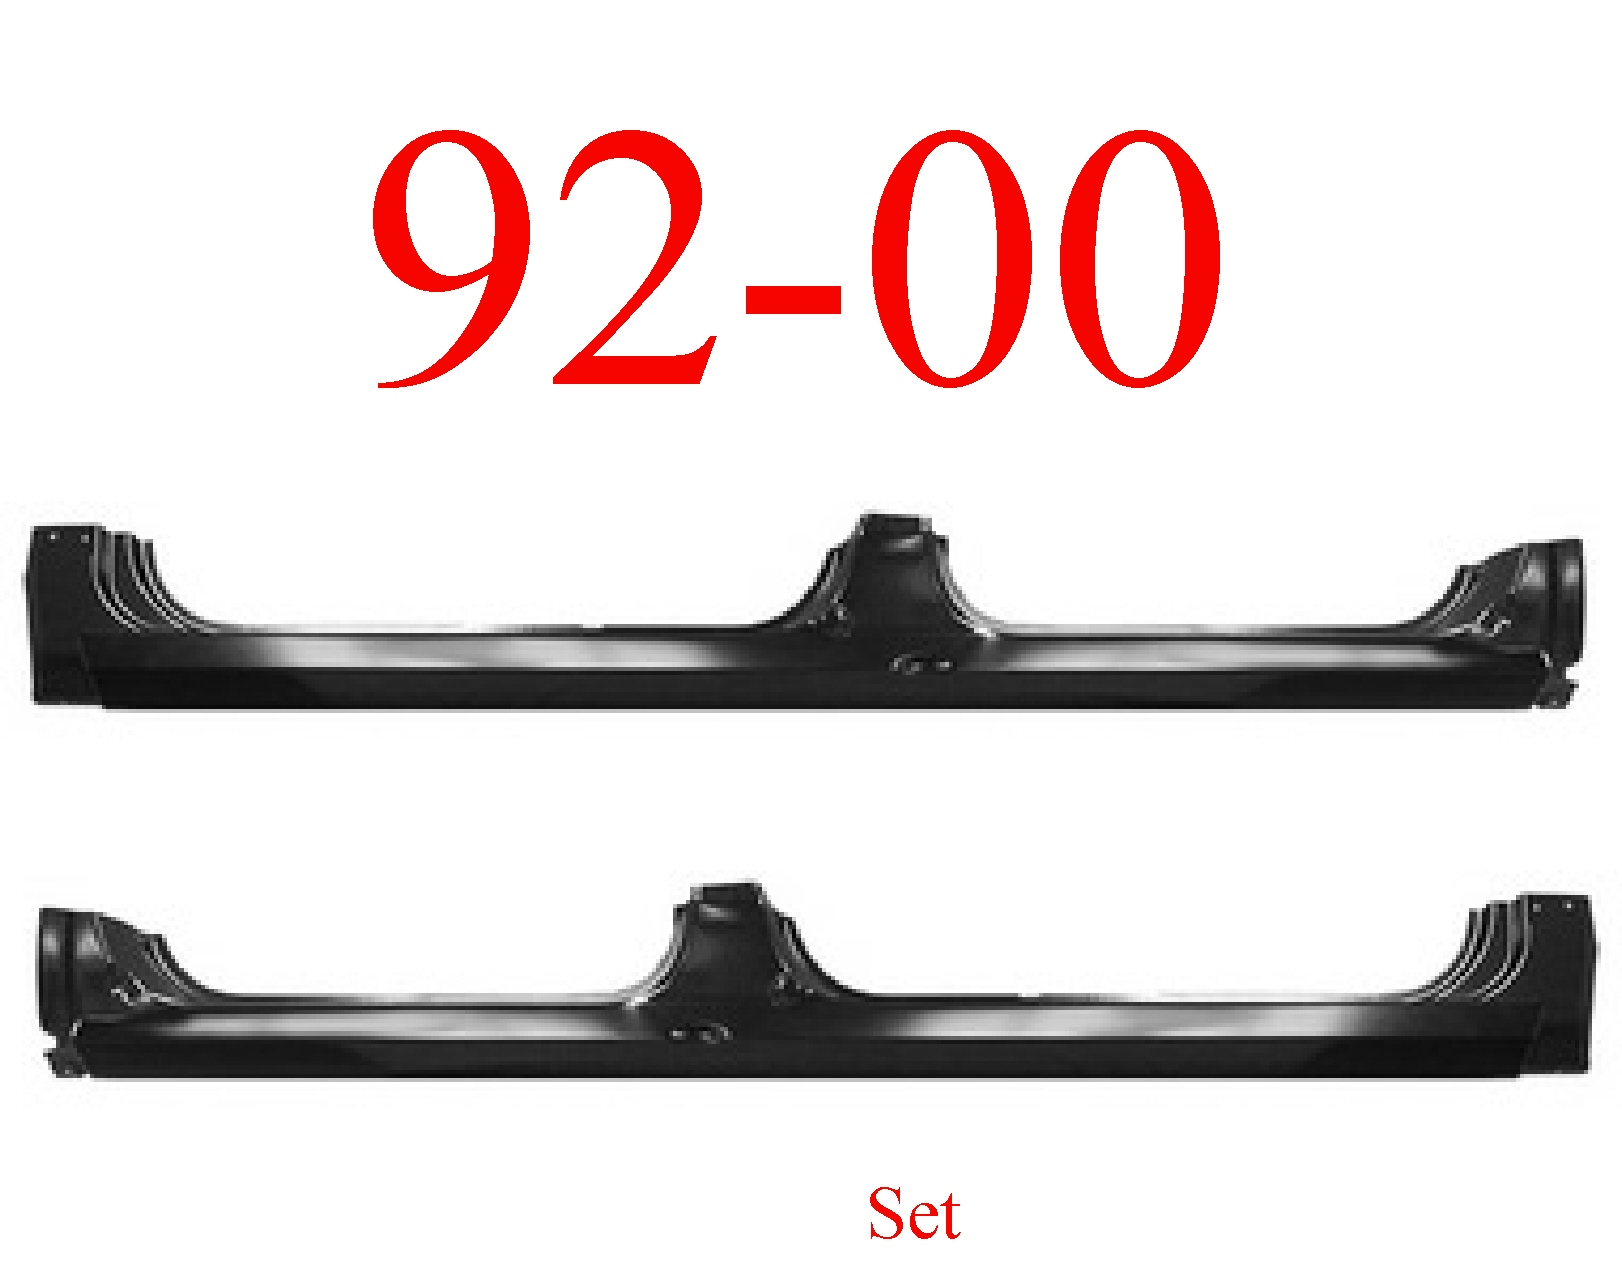 92-00 Chevy Extended Rocker Panel Set Crew Cab & Suburban